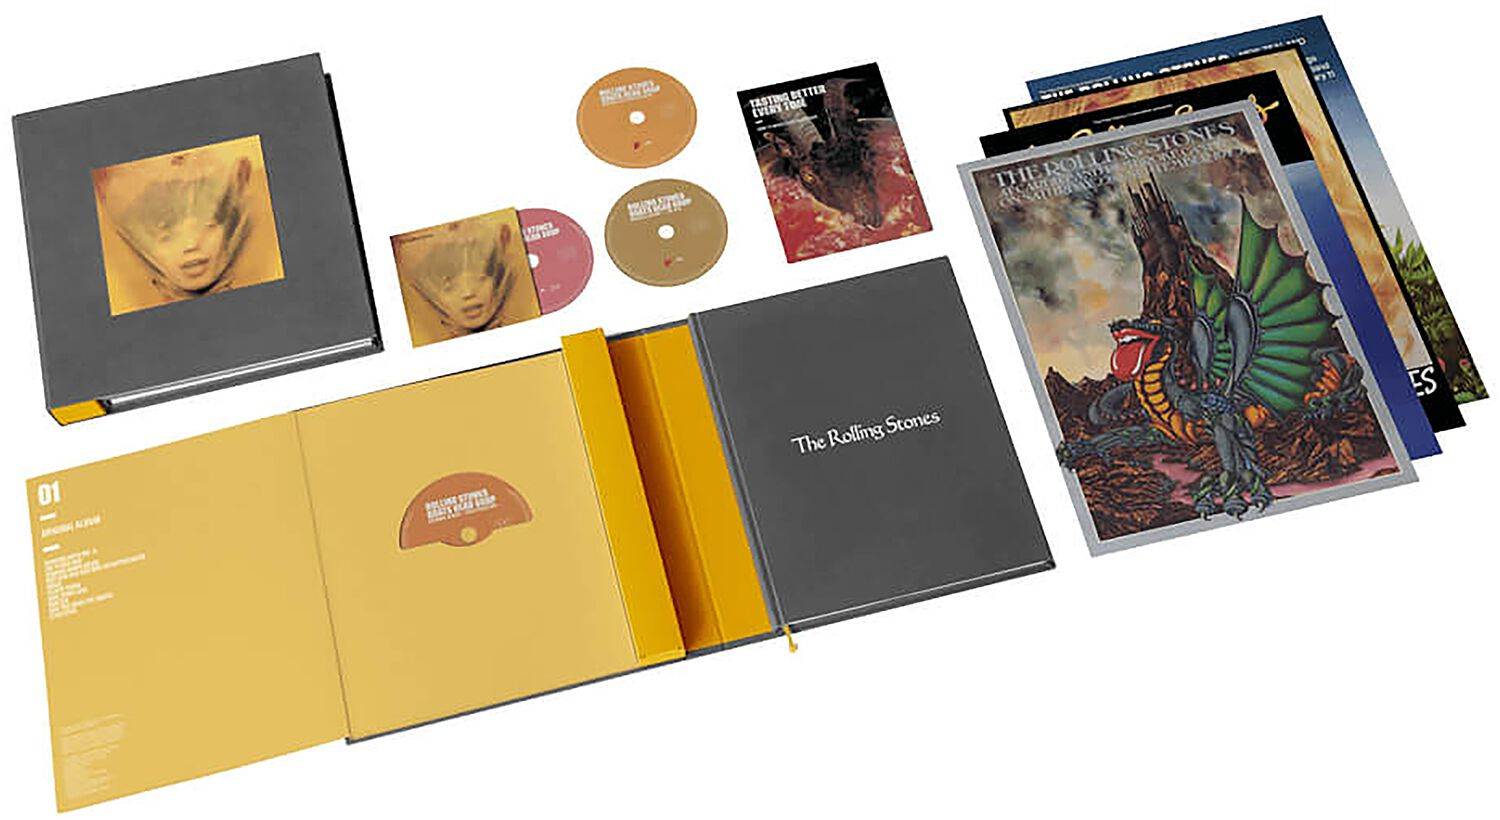 Image of The Rolling Stones Goats head soup 3-CD & Blu-ray Standard